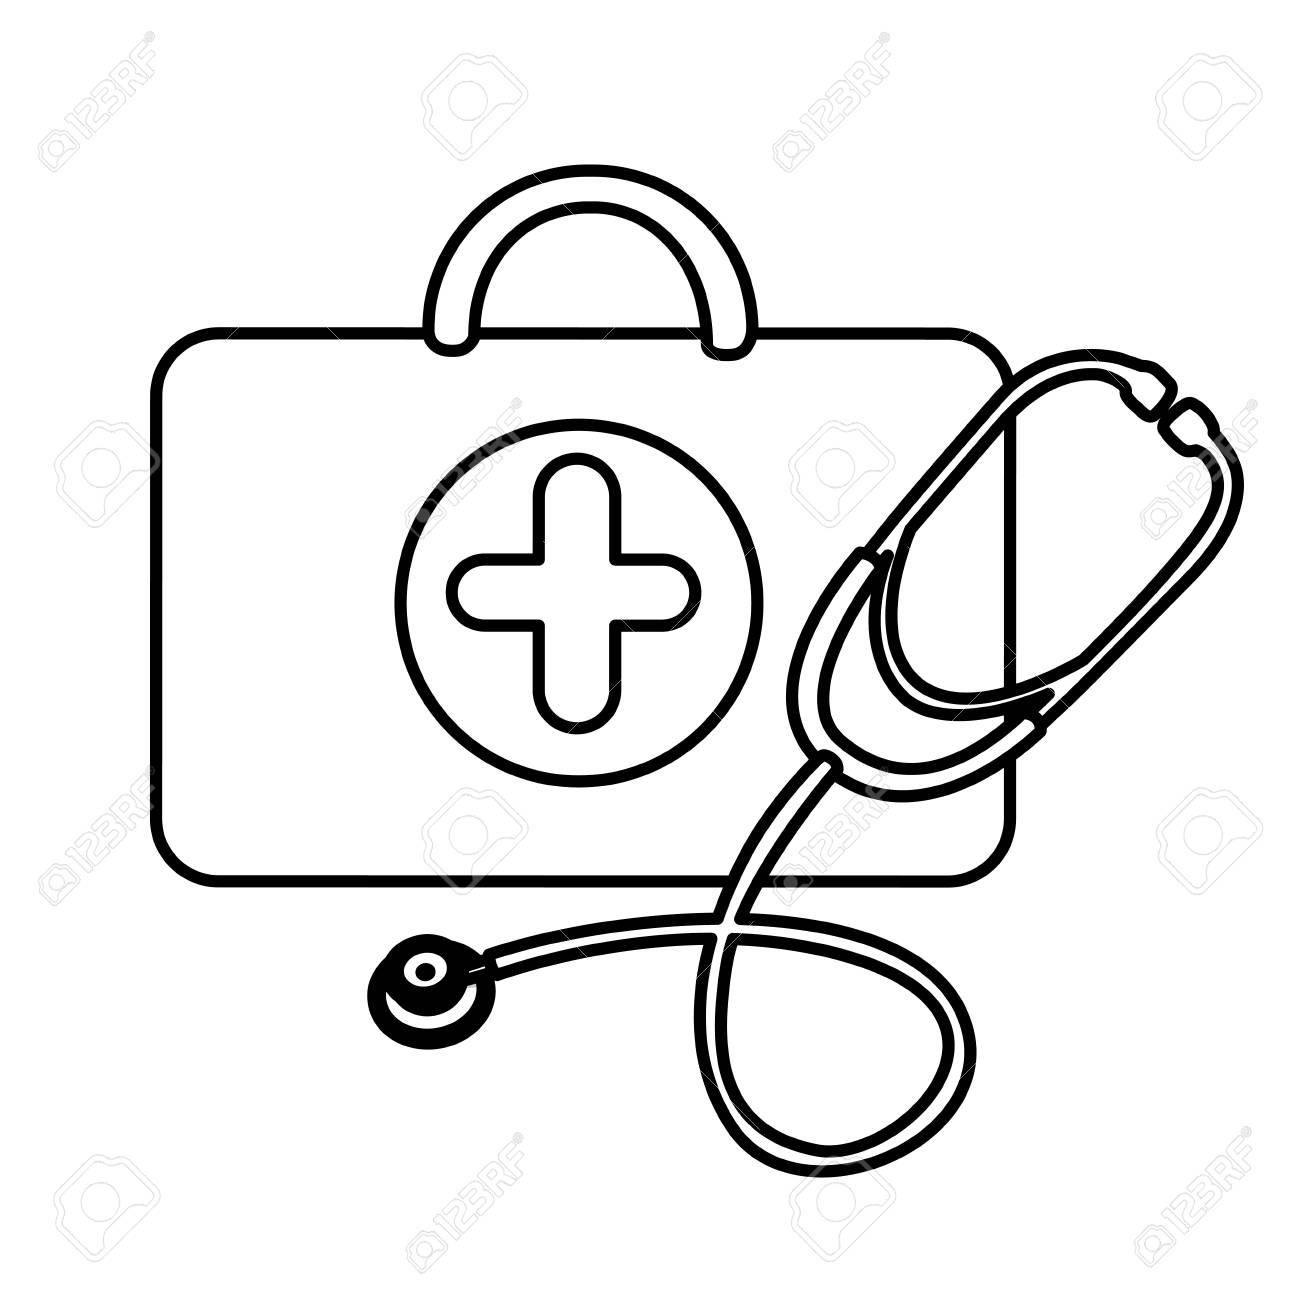 Silhouette Suitcase Health With Stethoscope Icon, Vector Design destiné Stéthoscope Dessin